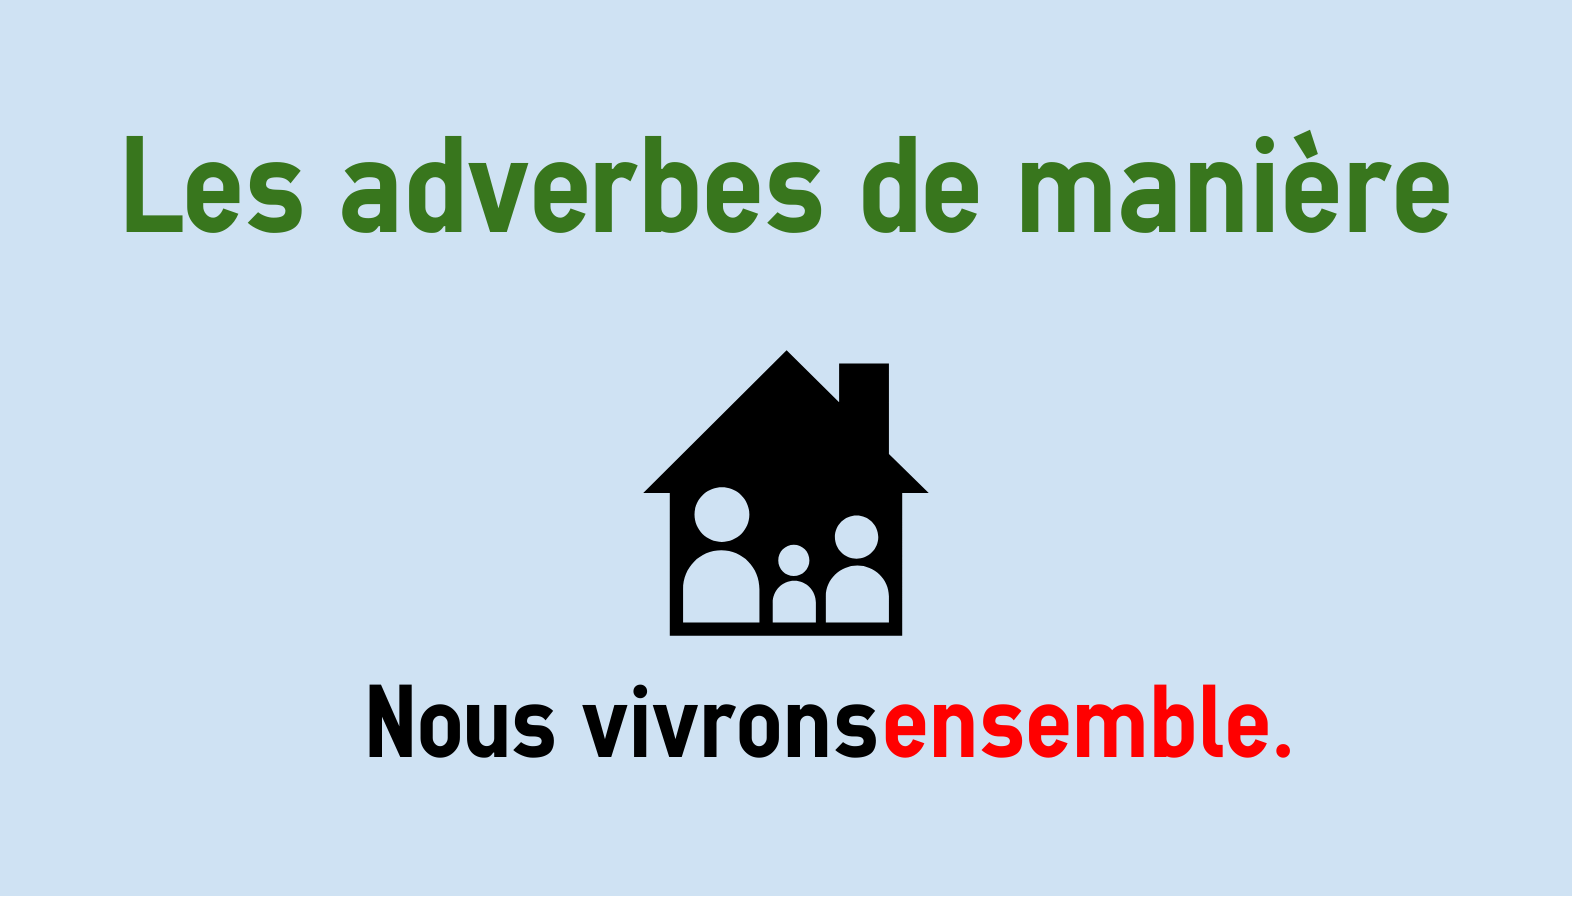 Adverbs Of Manner In French